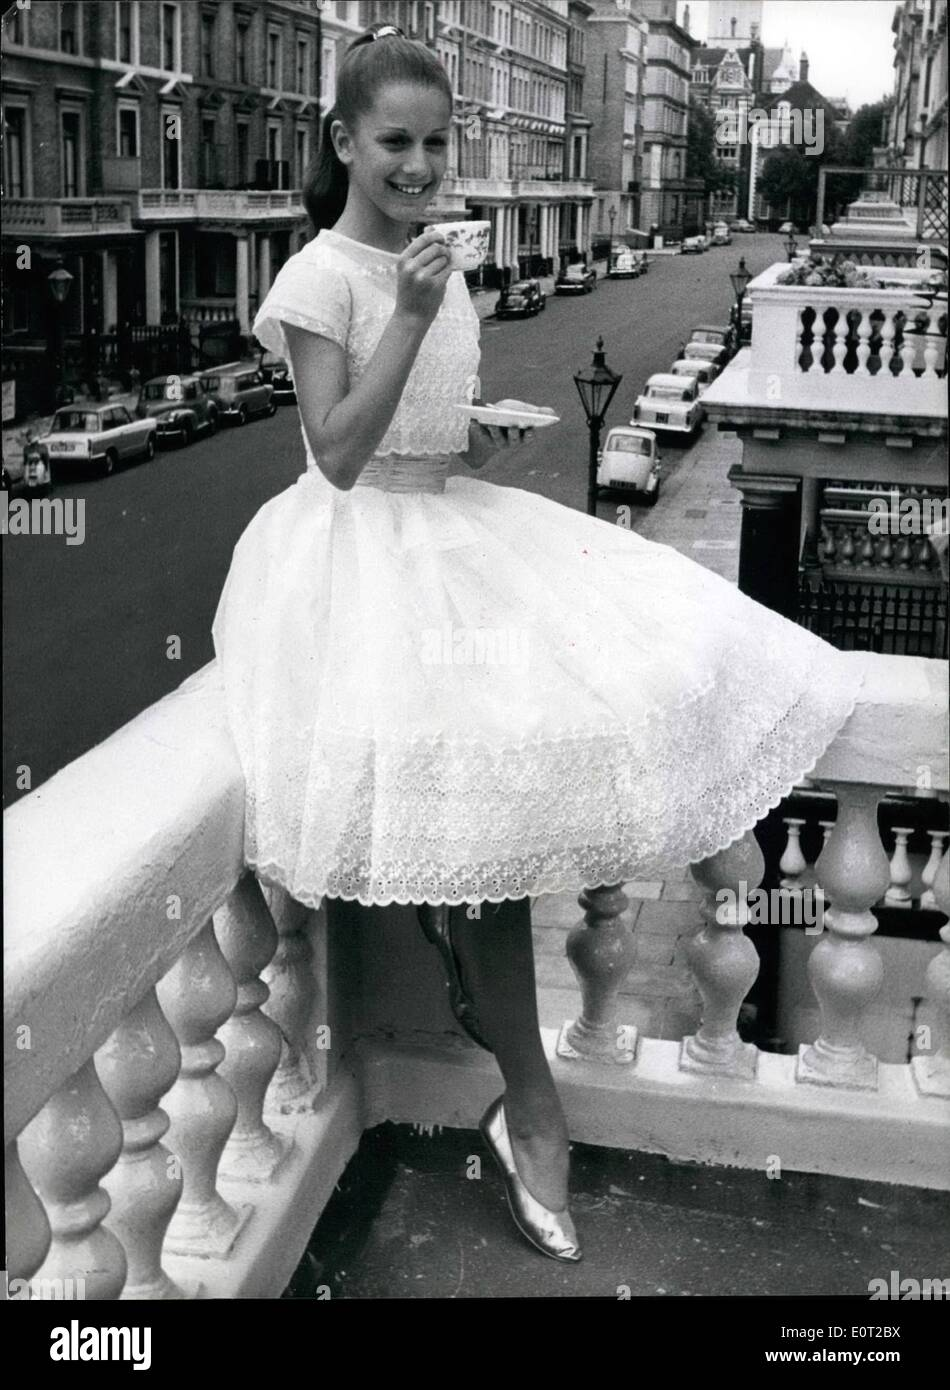 Jul. 07, 1960 - America's ''Baby Ballerina'' in London: Photo Shows Pictured in London yesterday is America's ''Baby Ballerina'' - 12-year old Claudia Cravey, of Palm Beach, Florida, who is here to dance the part of a young princess in love with a commoner when ''The Princess'' opens in London next month. - Stock Image